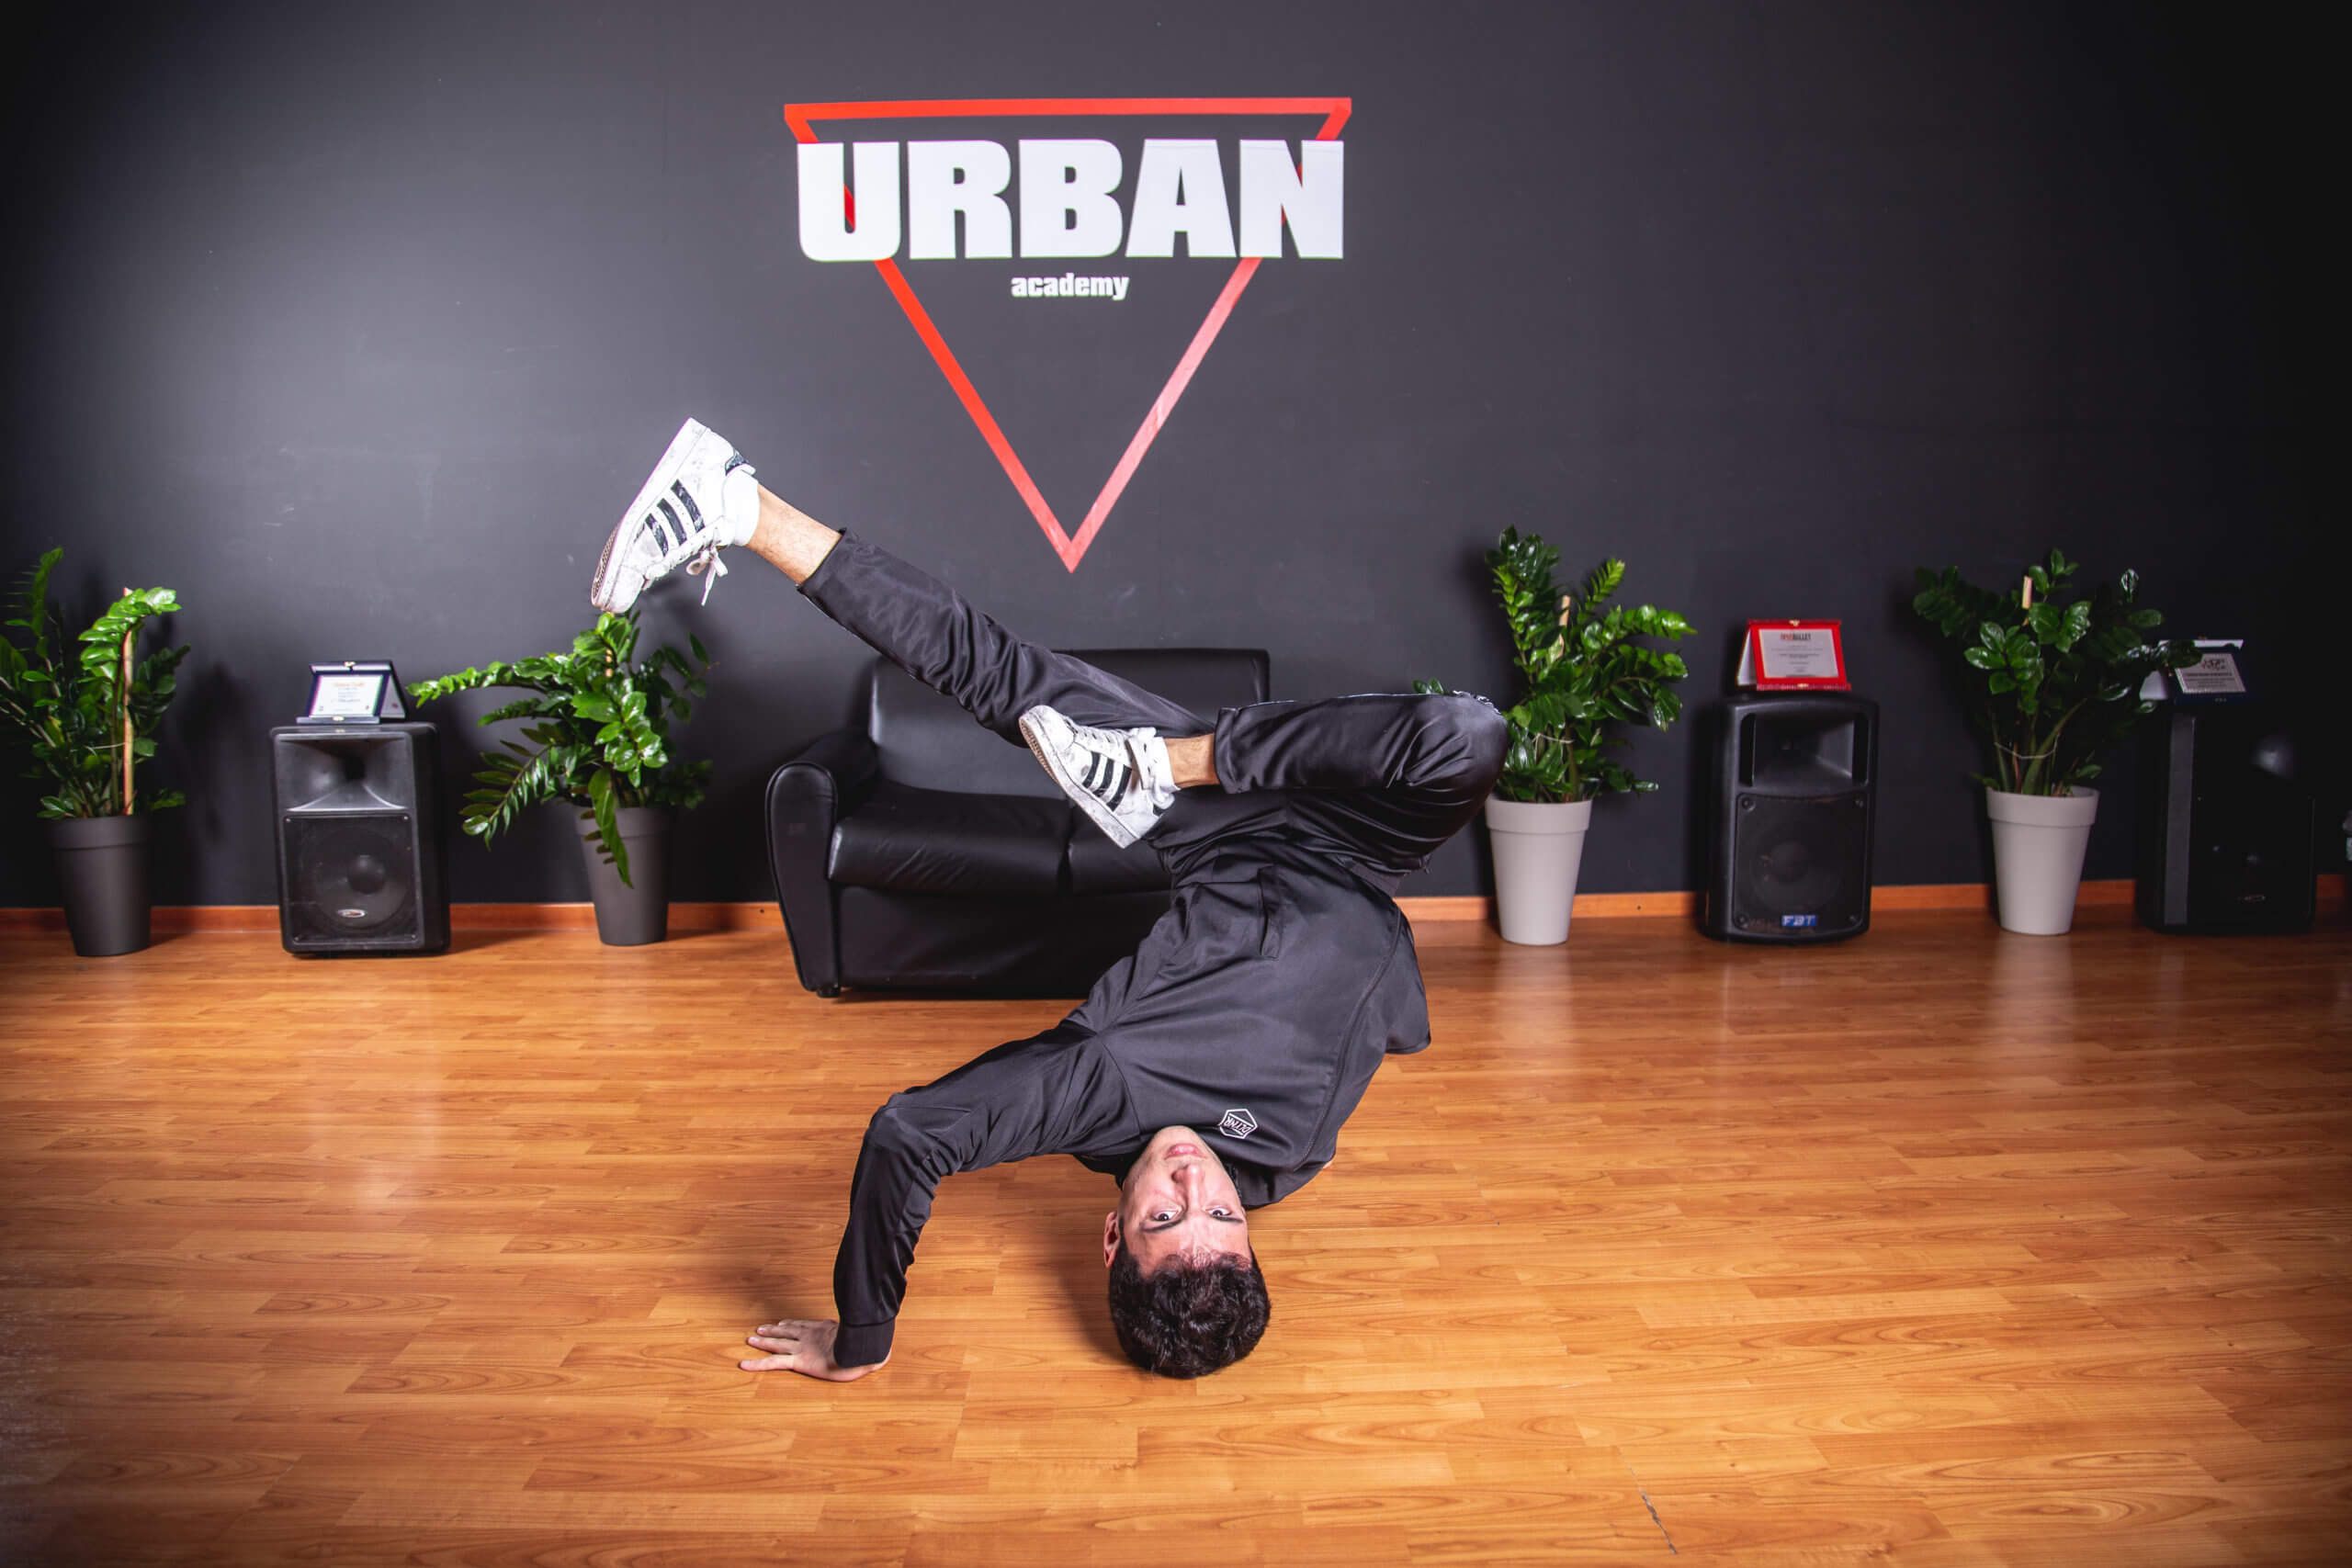 Breakdance-milano-ballerino-hiphop-danza-logan2